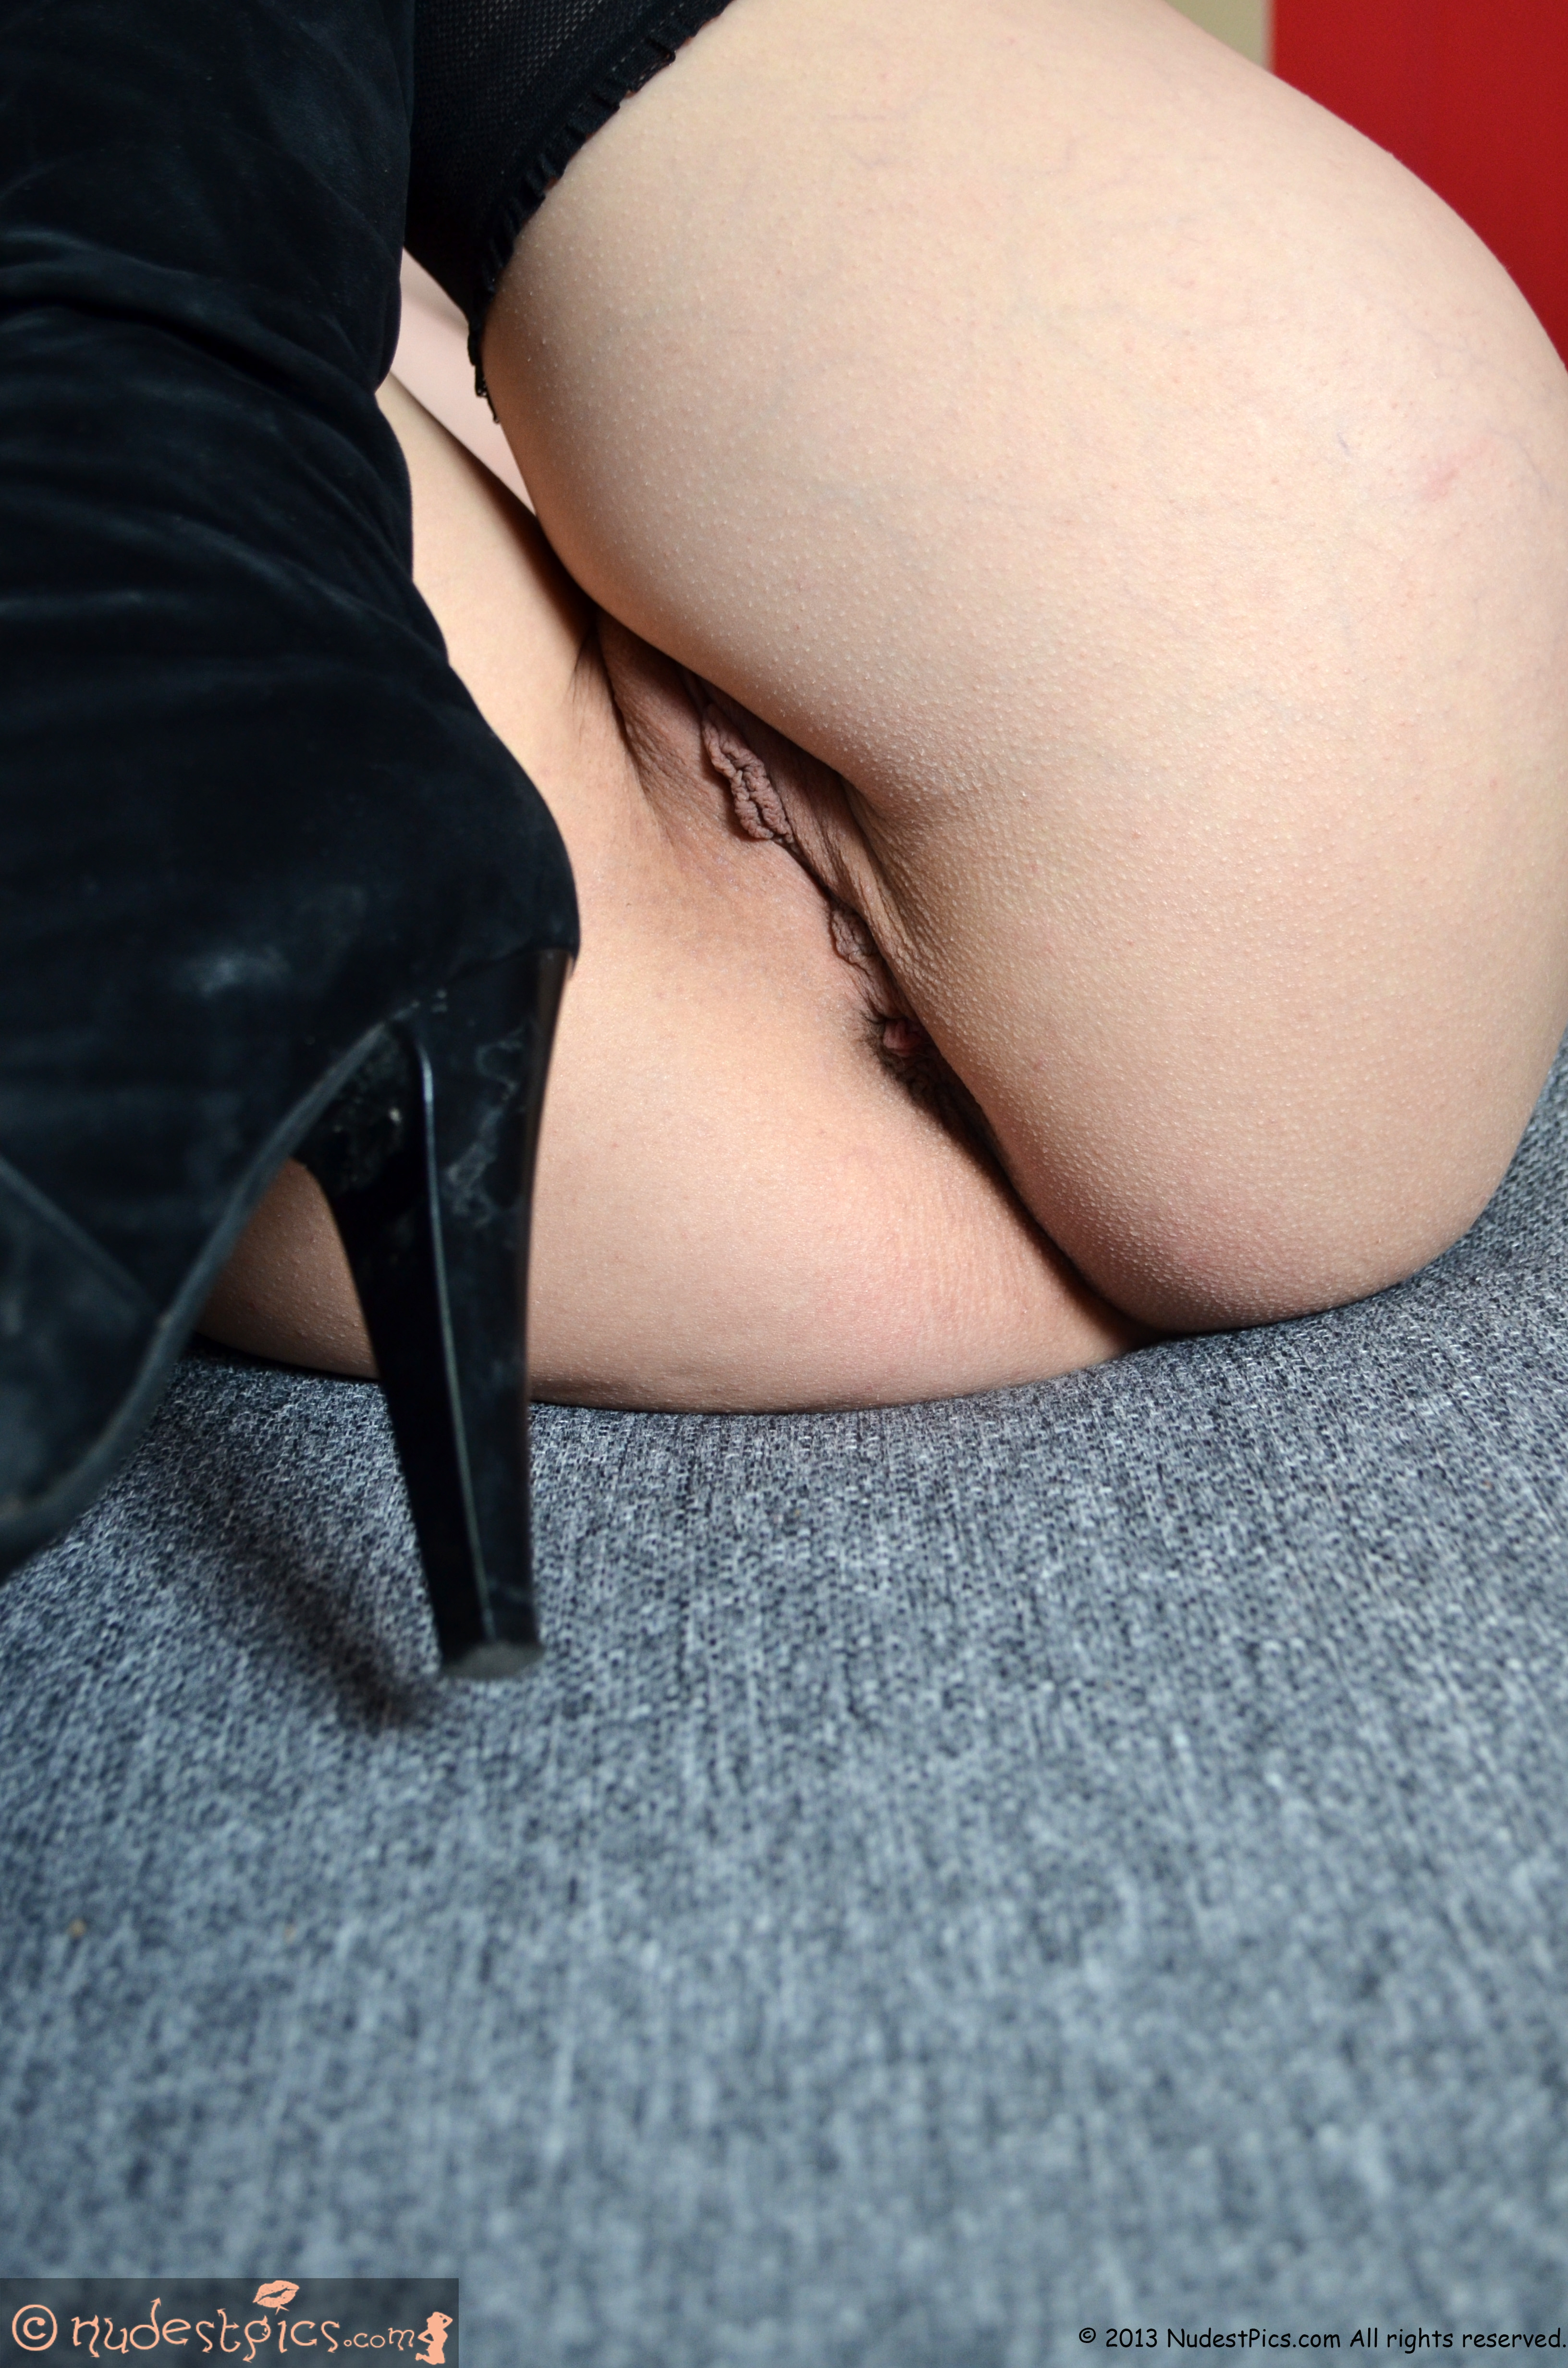 Closed Legs Up Pussy High Boots